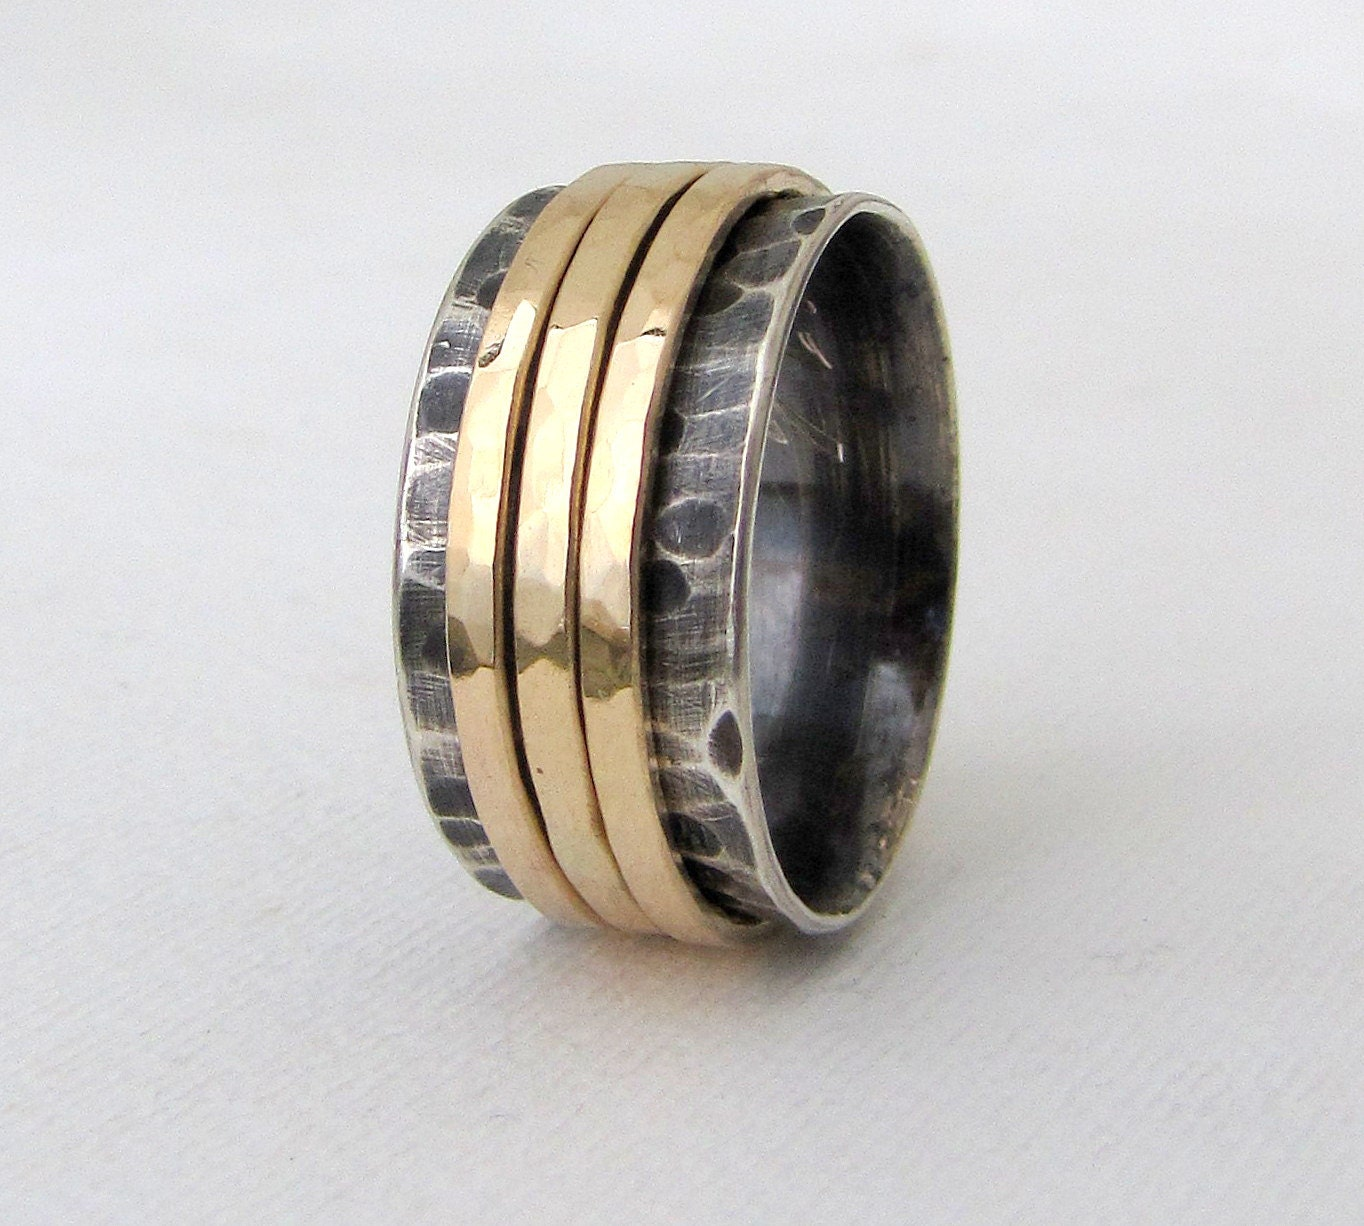 mens wedding band gold spinner ring wedding ring 14k gold